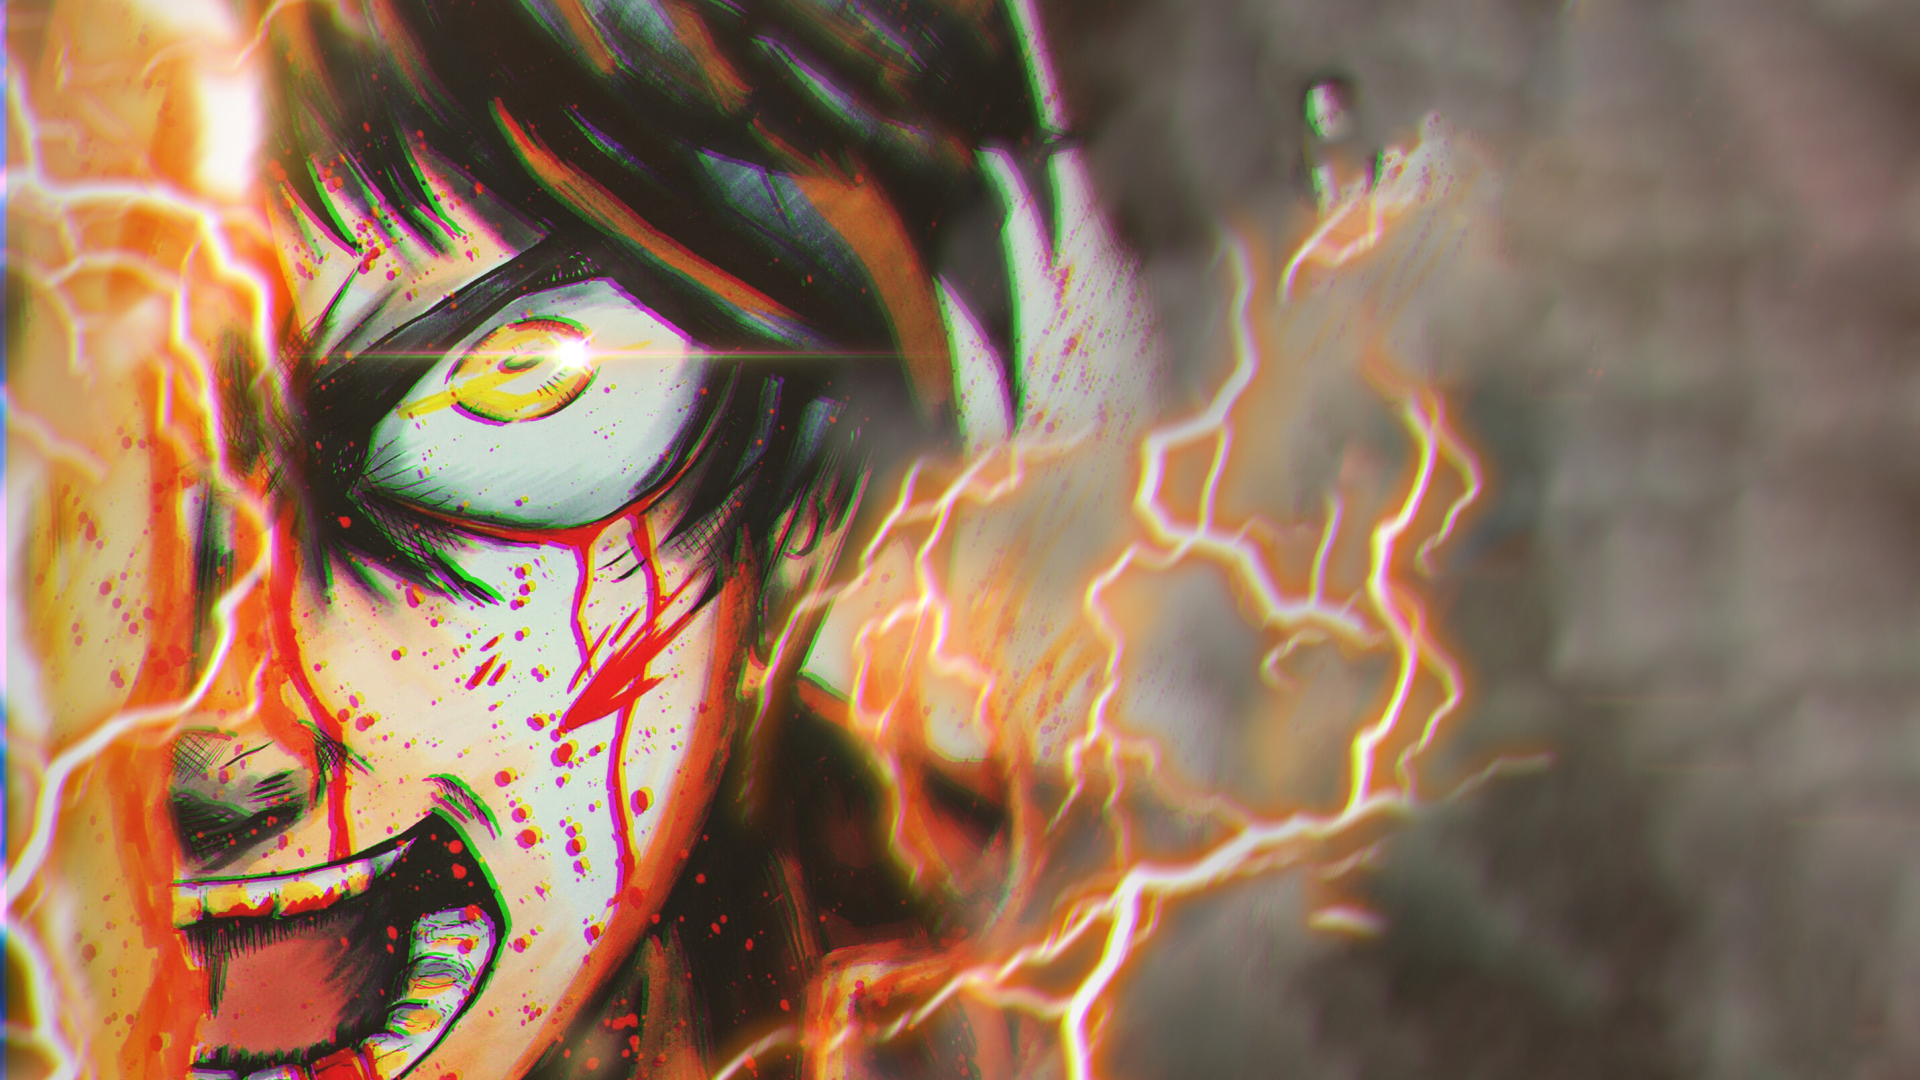 1920x1080 Eren Yeager In AOT 1080P Laptop Full HD ...